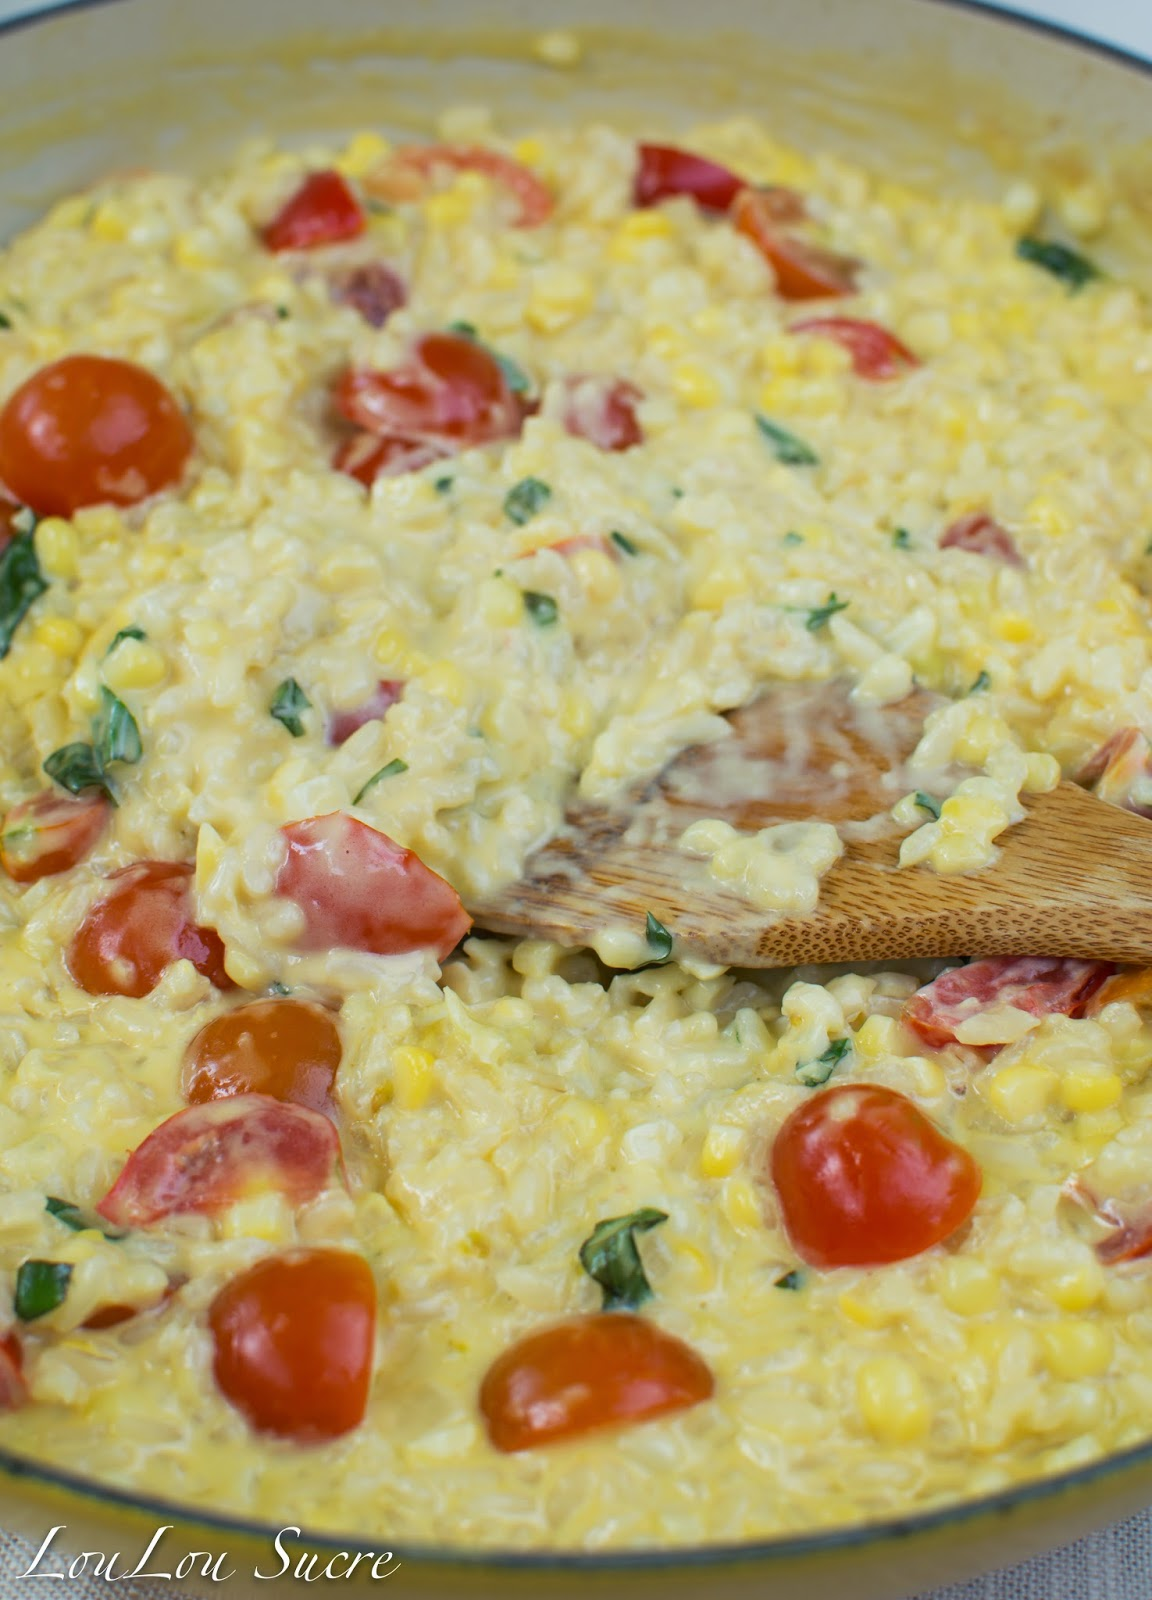 LouLou Sucre: Risotto with Corn, Tomatoes, and Basil